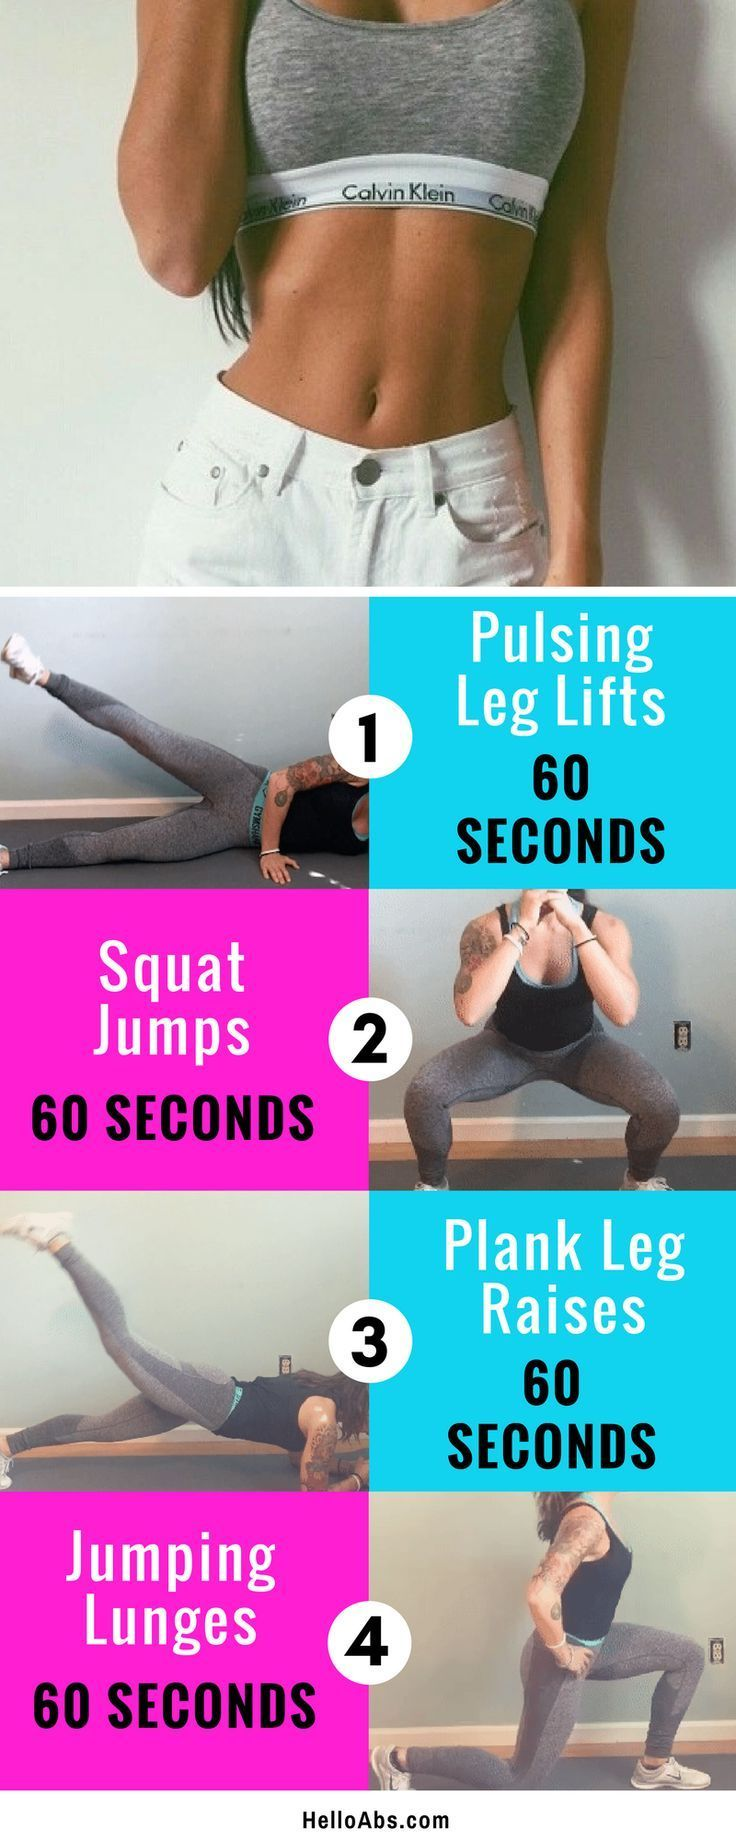 4 Exercises To Lose Belly Fat In 1 Week